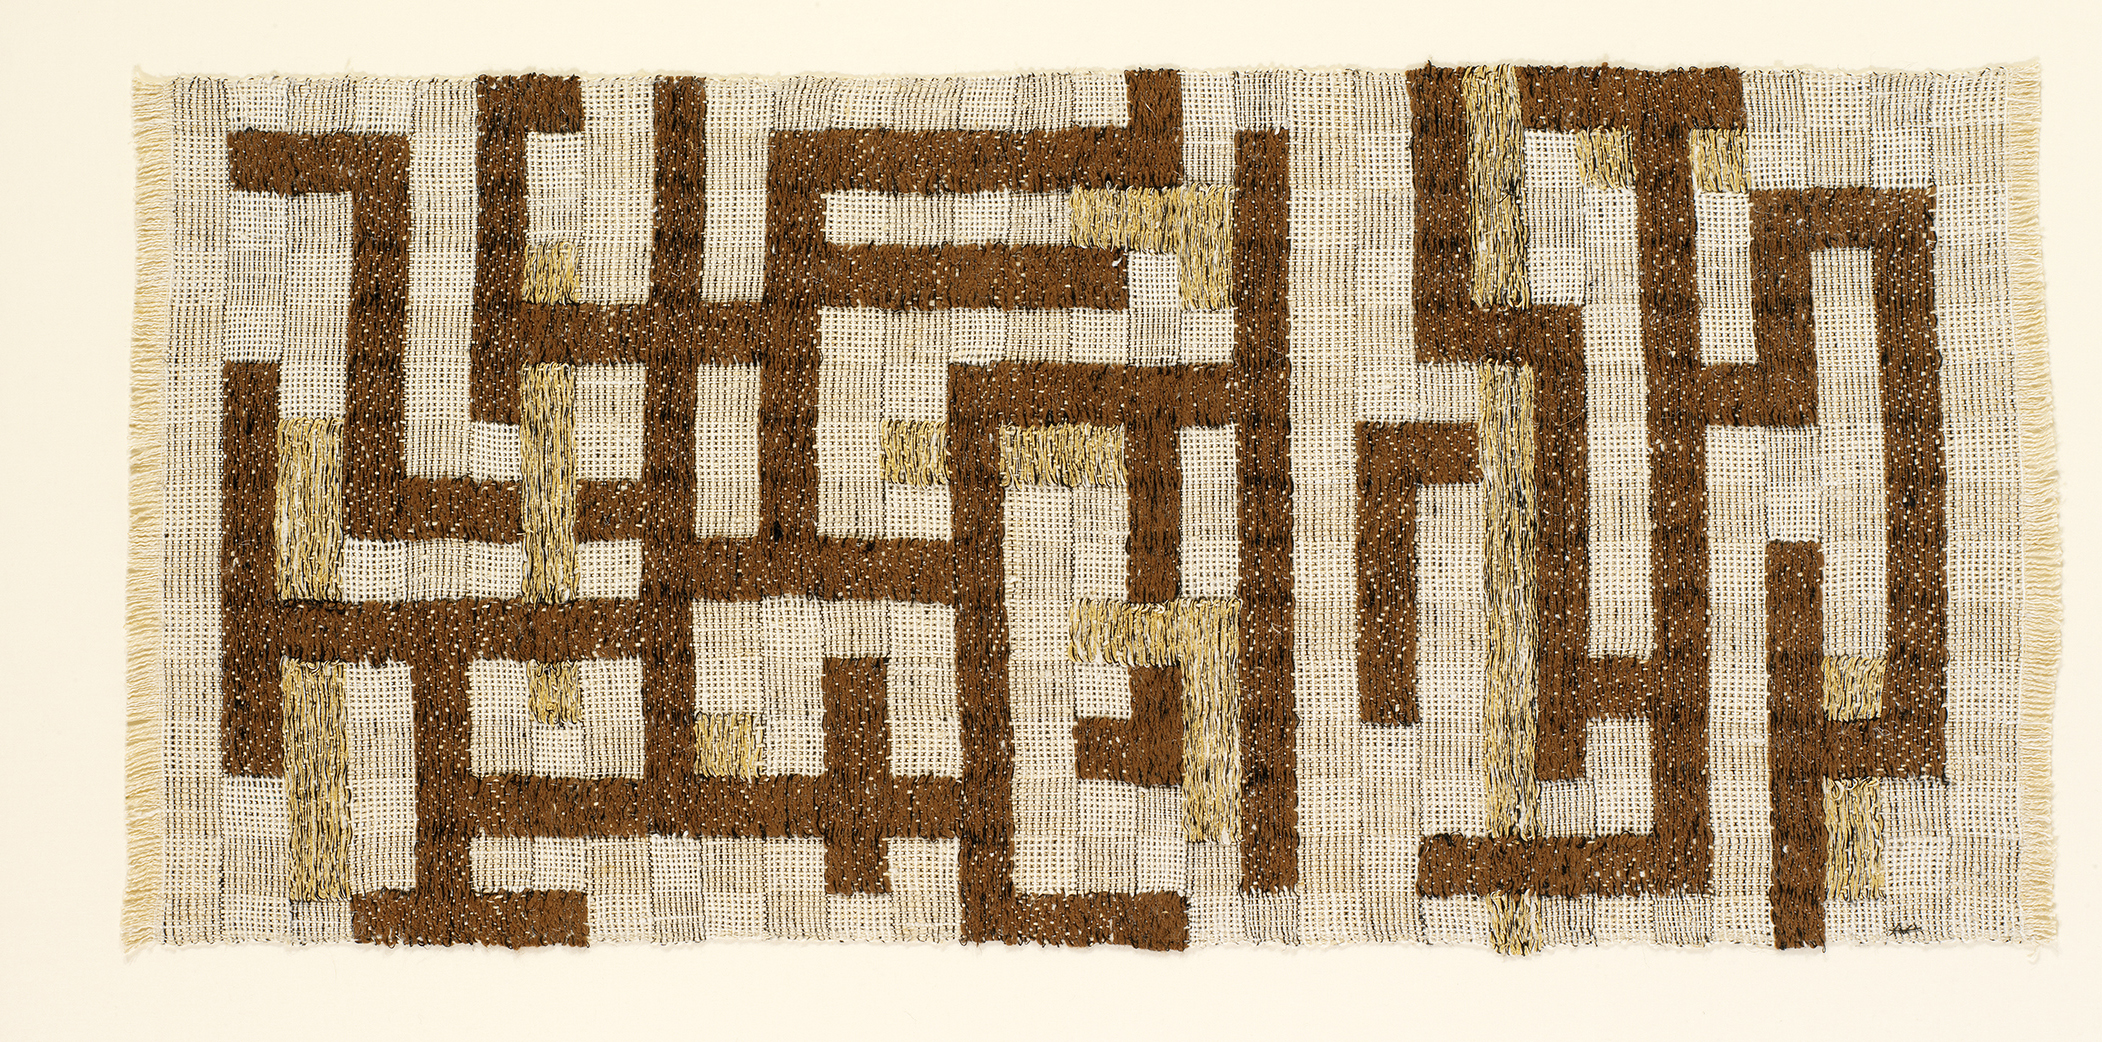 "Anni Albers, ""Two,"" 1952, Linen, cotton, rayon, 19 x 40 in., © The Josef and Anni Albers Foundation / Artists Rights Society (ARS), New York 2019"